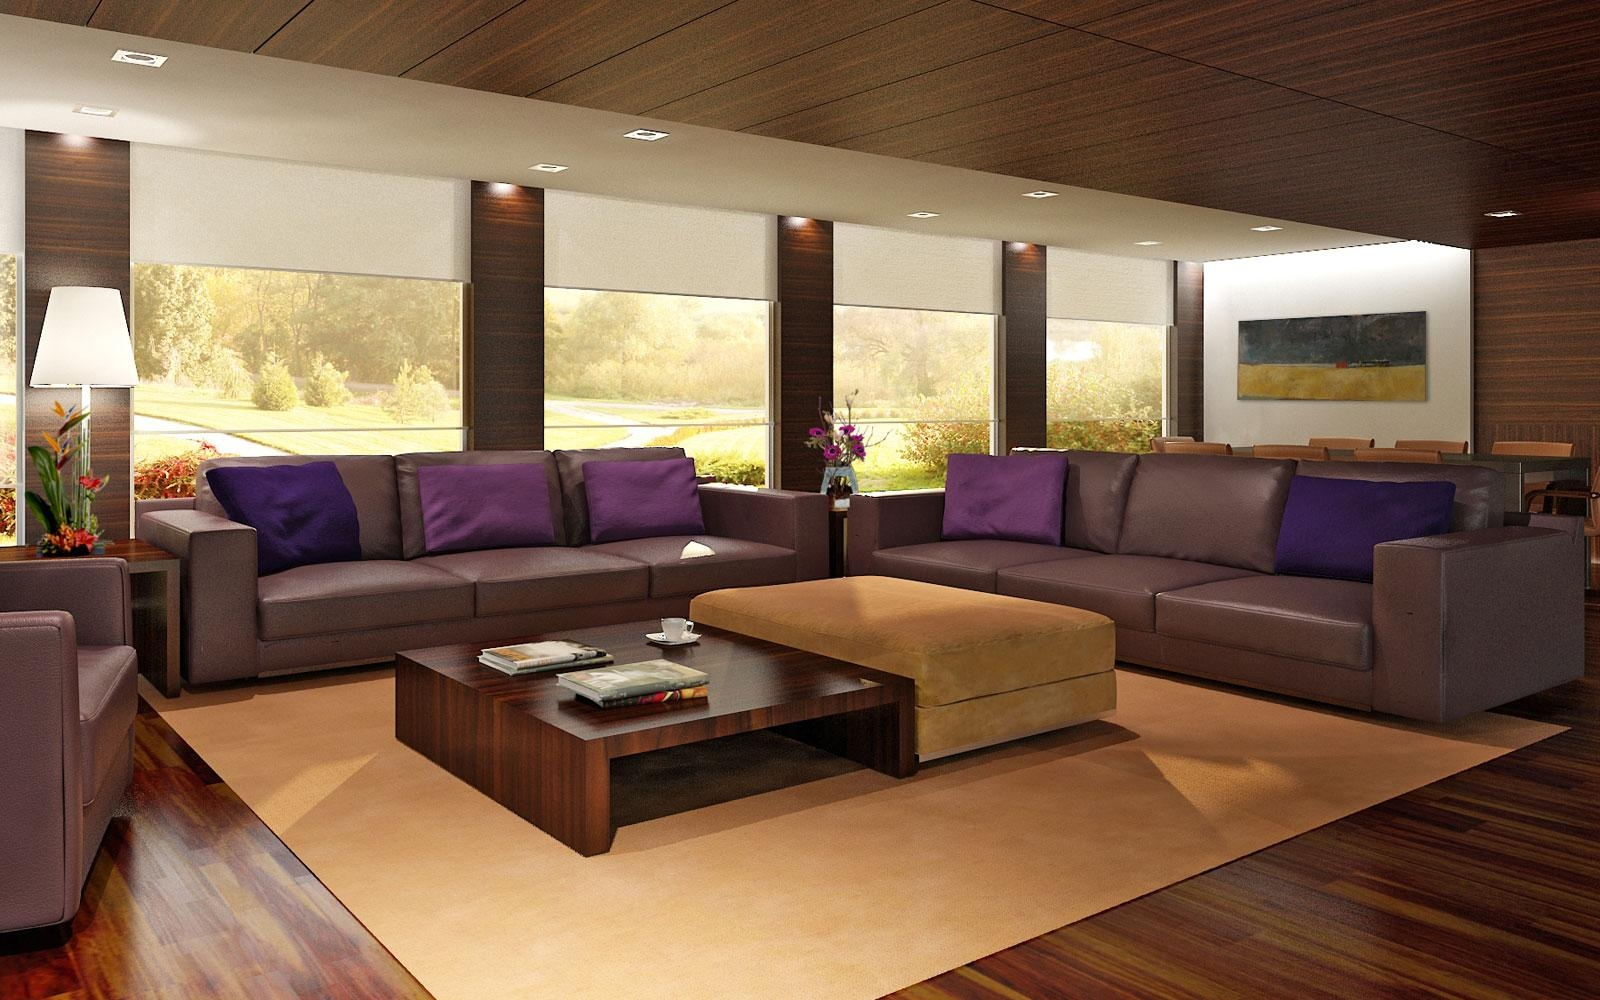 Big Living Room Wuth Large Sectional Sofa And Coffee Table And Within Big Sofa Chairs (Image 4 of 20)